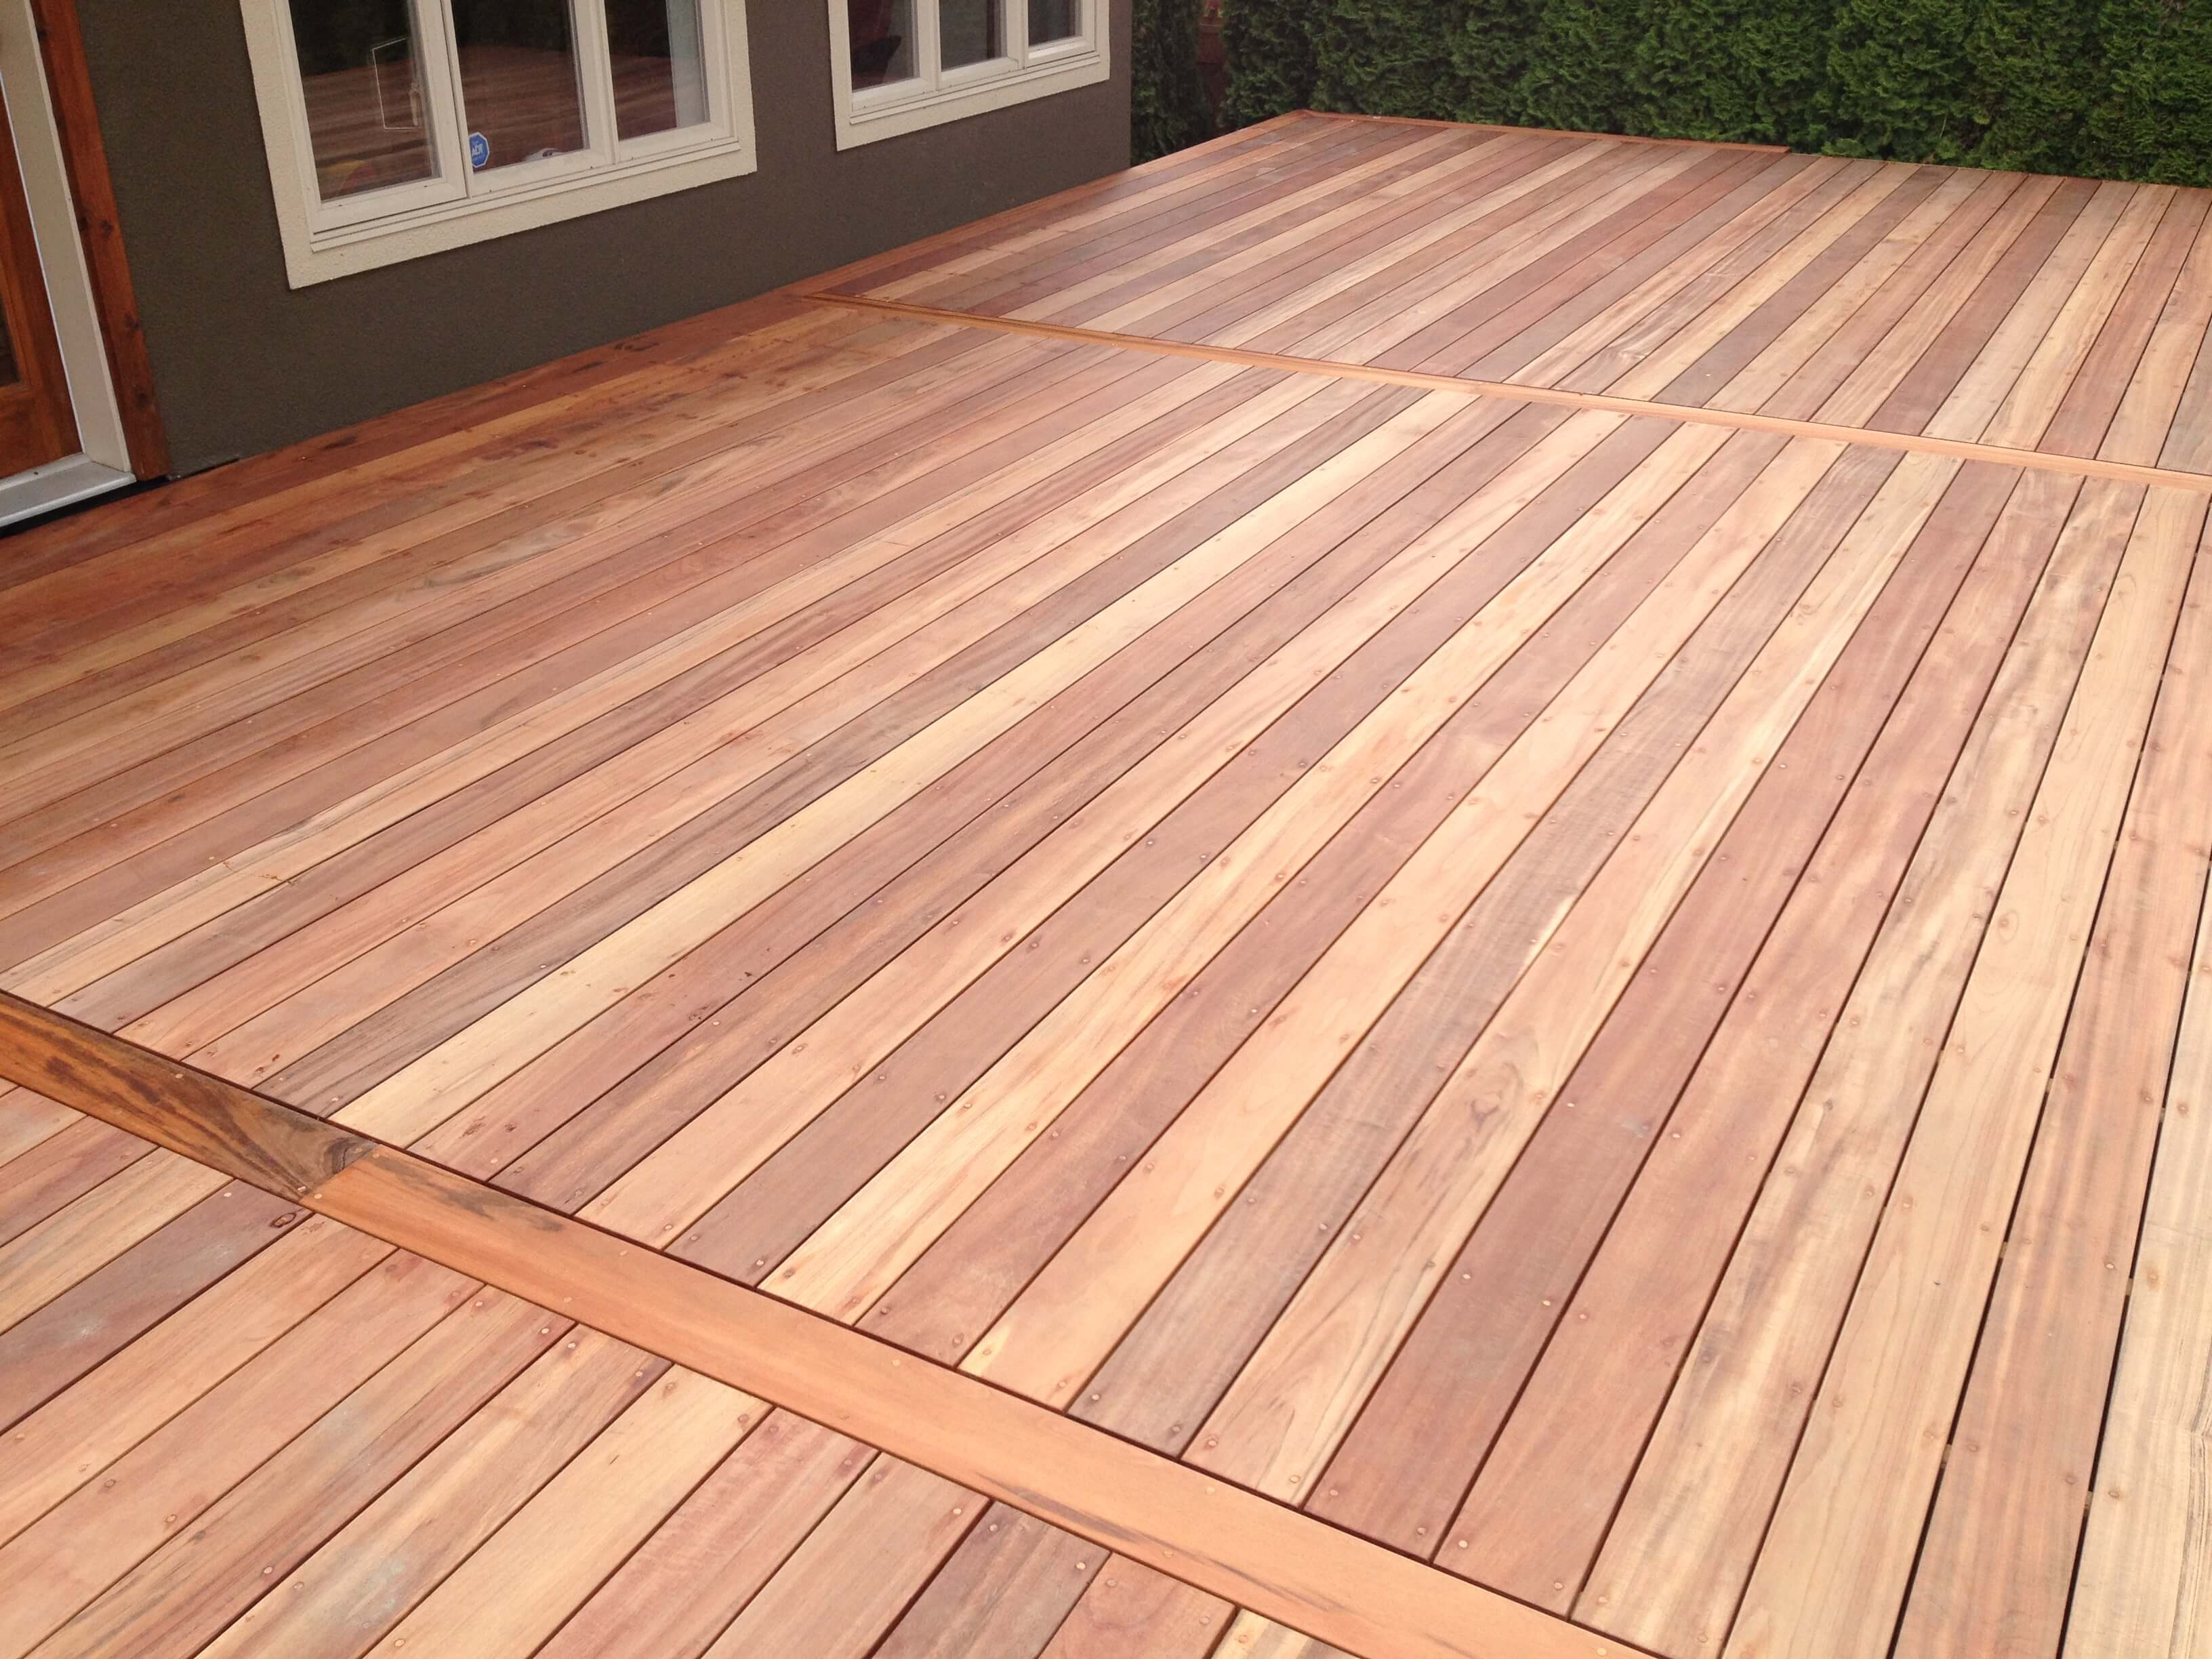 Tigerwood Decking | Deck Railing Materials | Best Wood for Decking Material